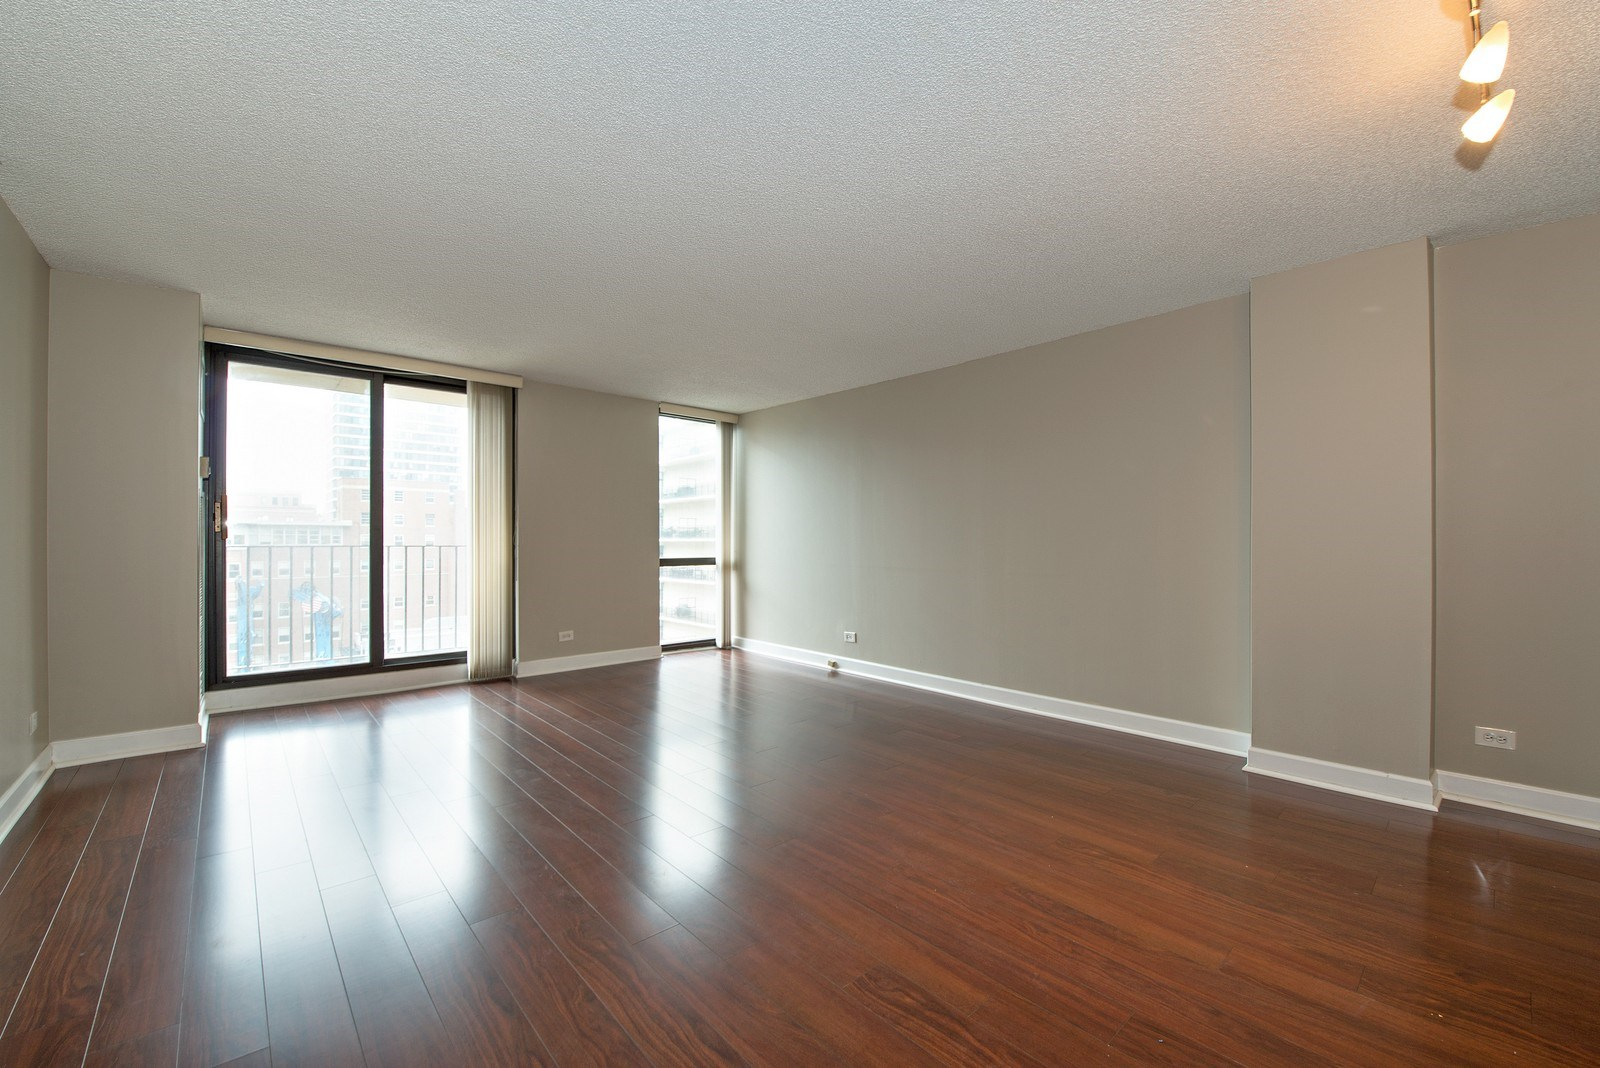 Real Estate Photography - 70 W Huron St, 807, Chicago, IL, 60654 - Living Room